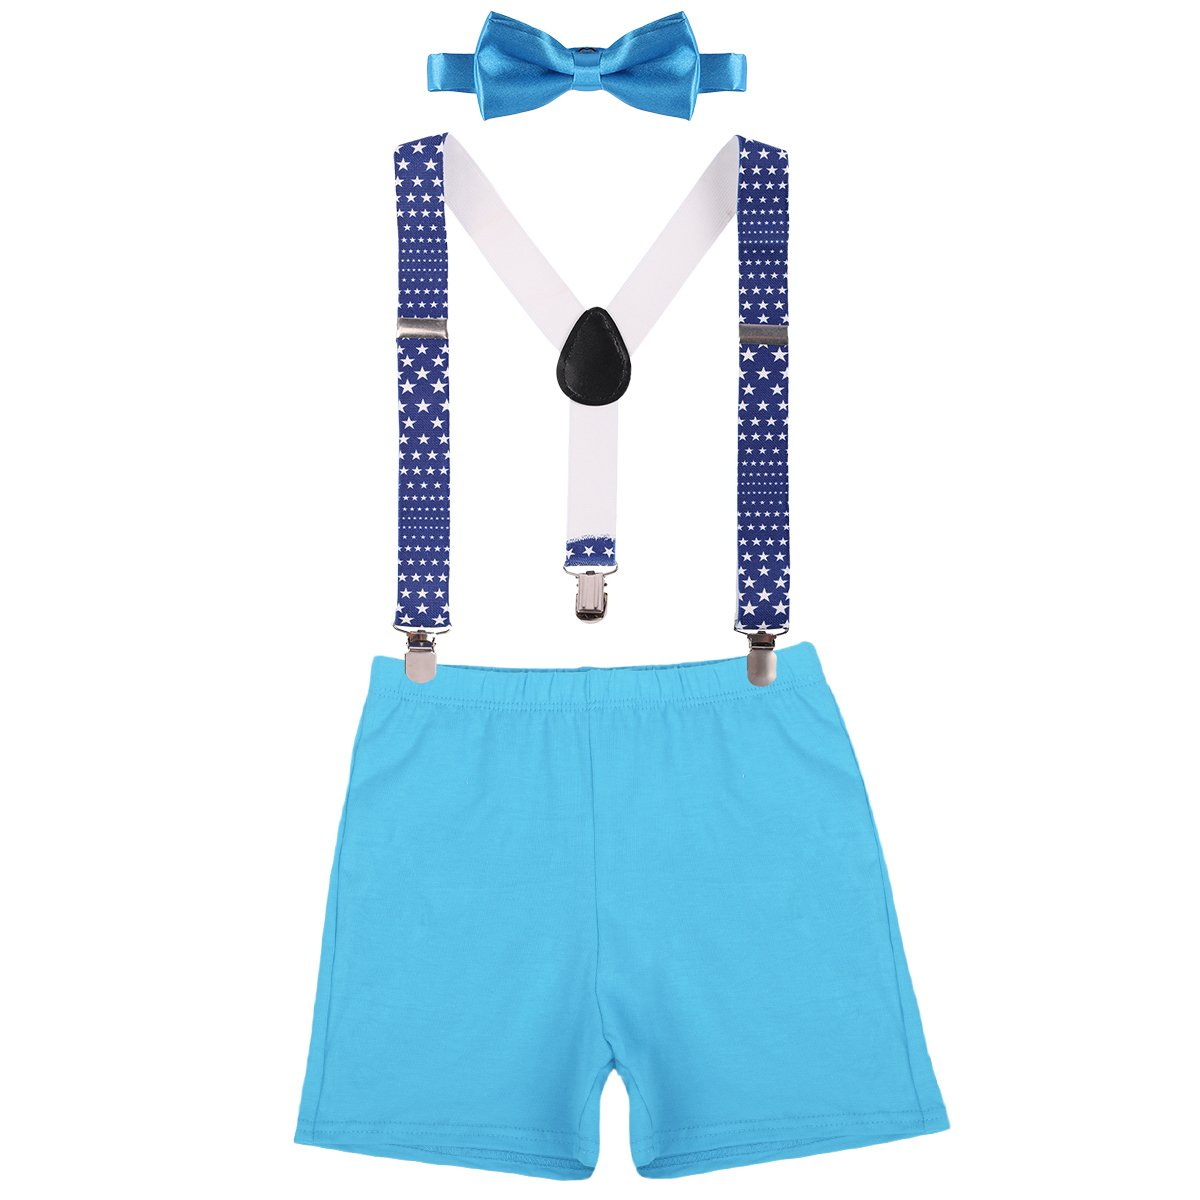 Baby Boys First Birthday Adjustable Y Back Elastic Clip Suspenders Cake Smash Outfit Tuxedo Pre-tied Bloomers Bowtie set Z# Blue+Star